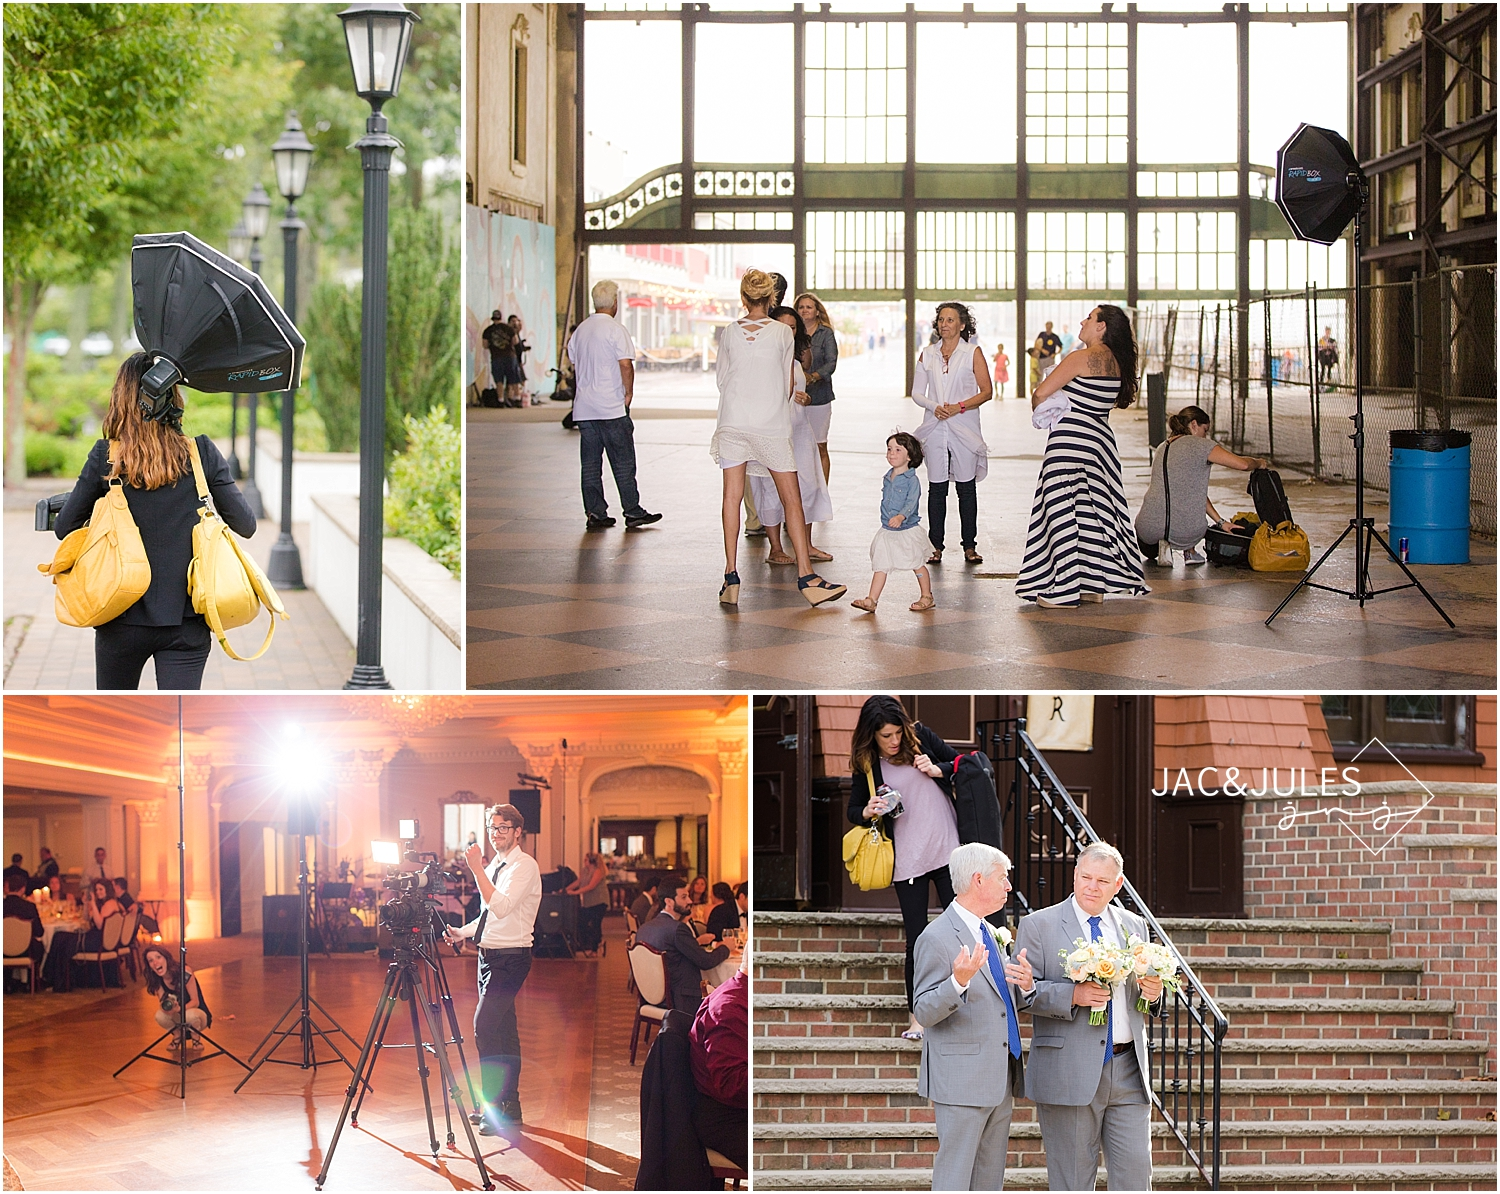 jacnjules goes behind the scenes photographing families and weddings in NJ